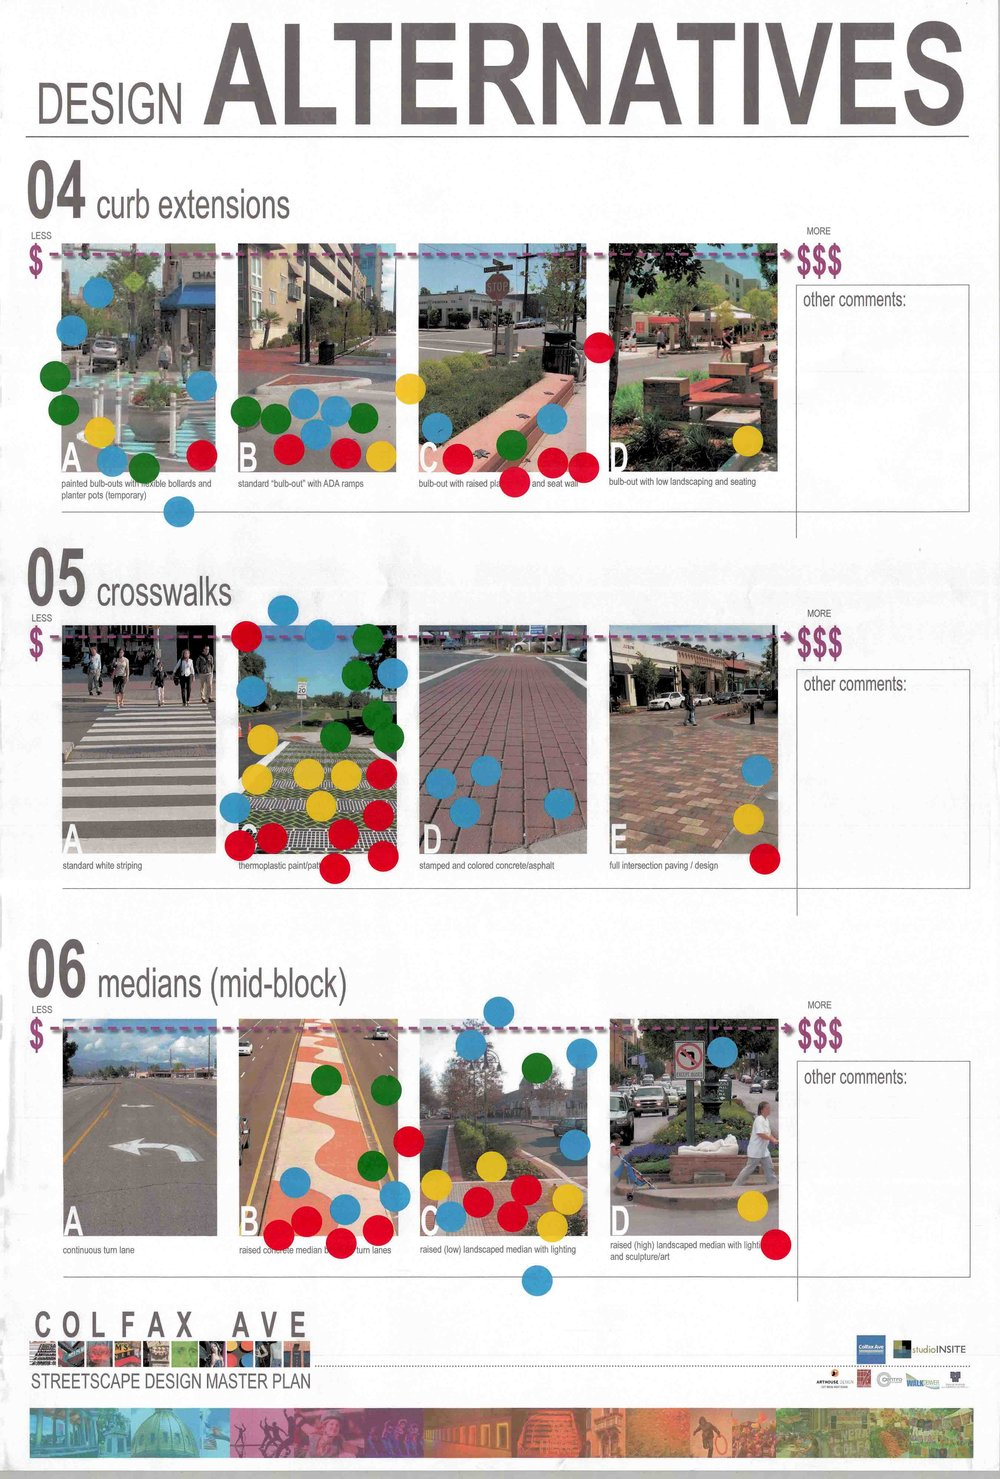 "<img src=""studioINSITE_E_Colfax_Stakeholders"" alt=""Streetscape Design, Master Plan, catalyst Project, Funding Plan, Phasing Plan, Public Outreach, BID, Bus Rapid Transit, Complete Streets, Streetscape Guidlines, Signage and Wayfinding, Public Art, Community Gateways, Landscape Architecture, Urban Design"" title=""Colfax Avenue Streetscape Design Master Plan""/>"